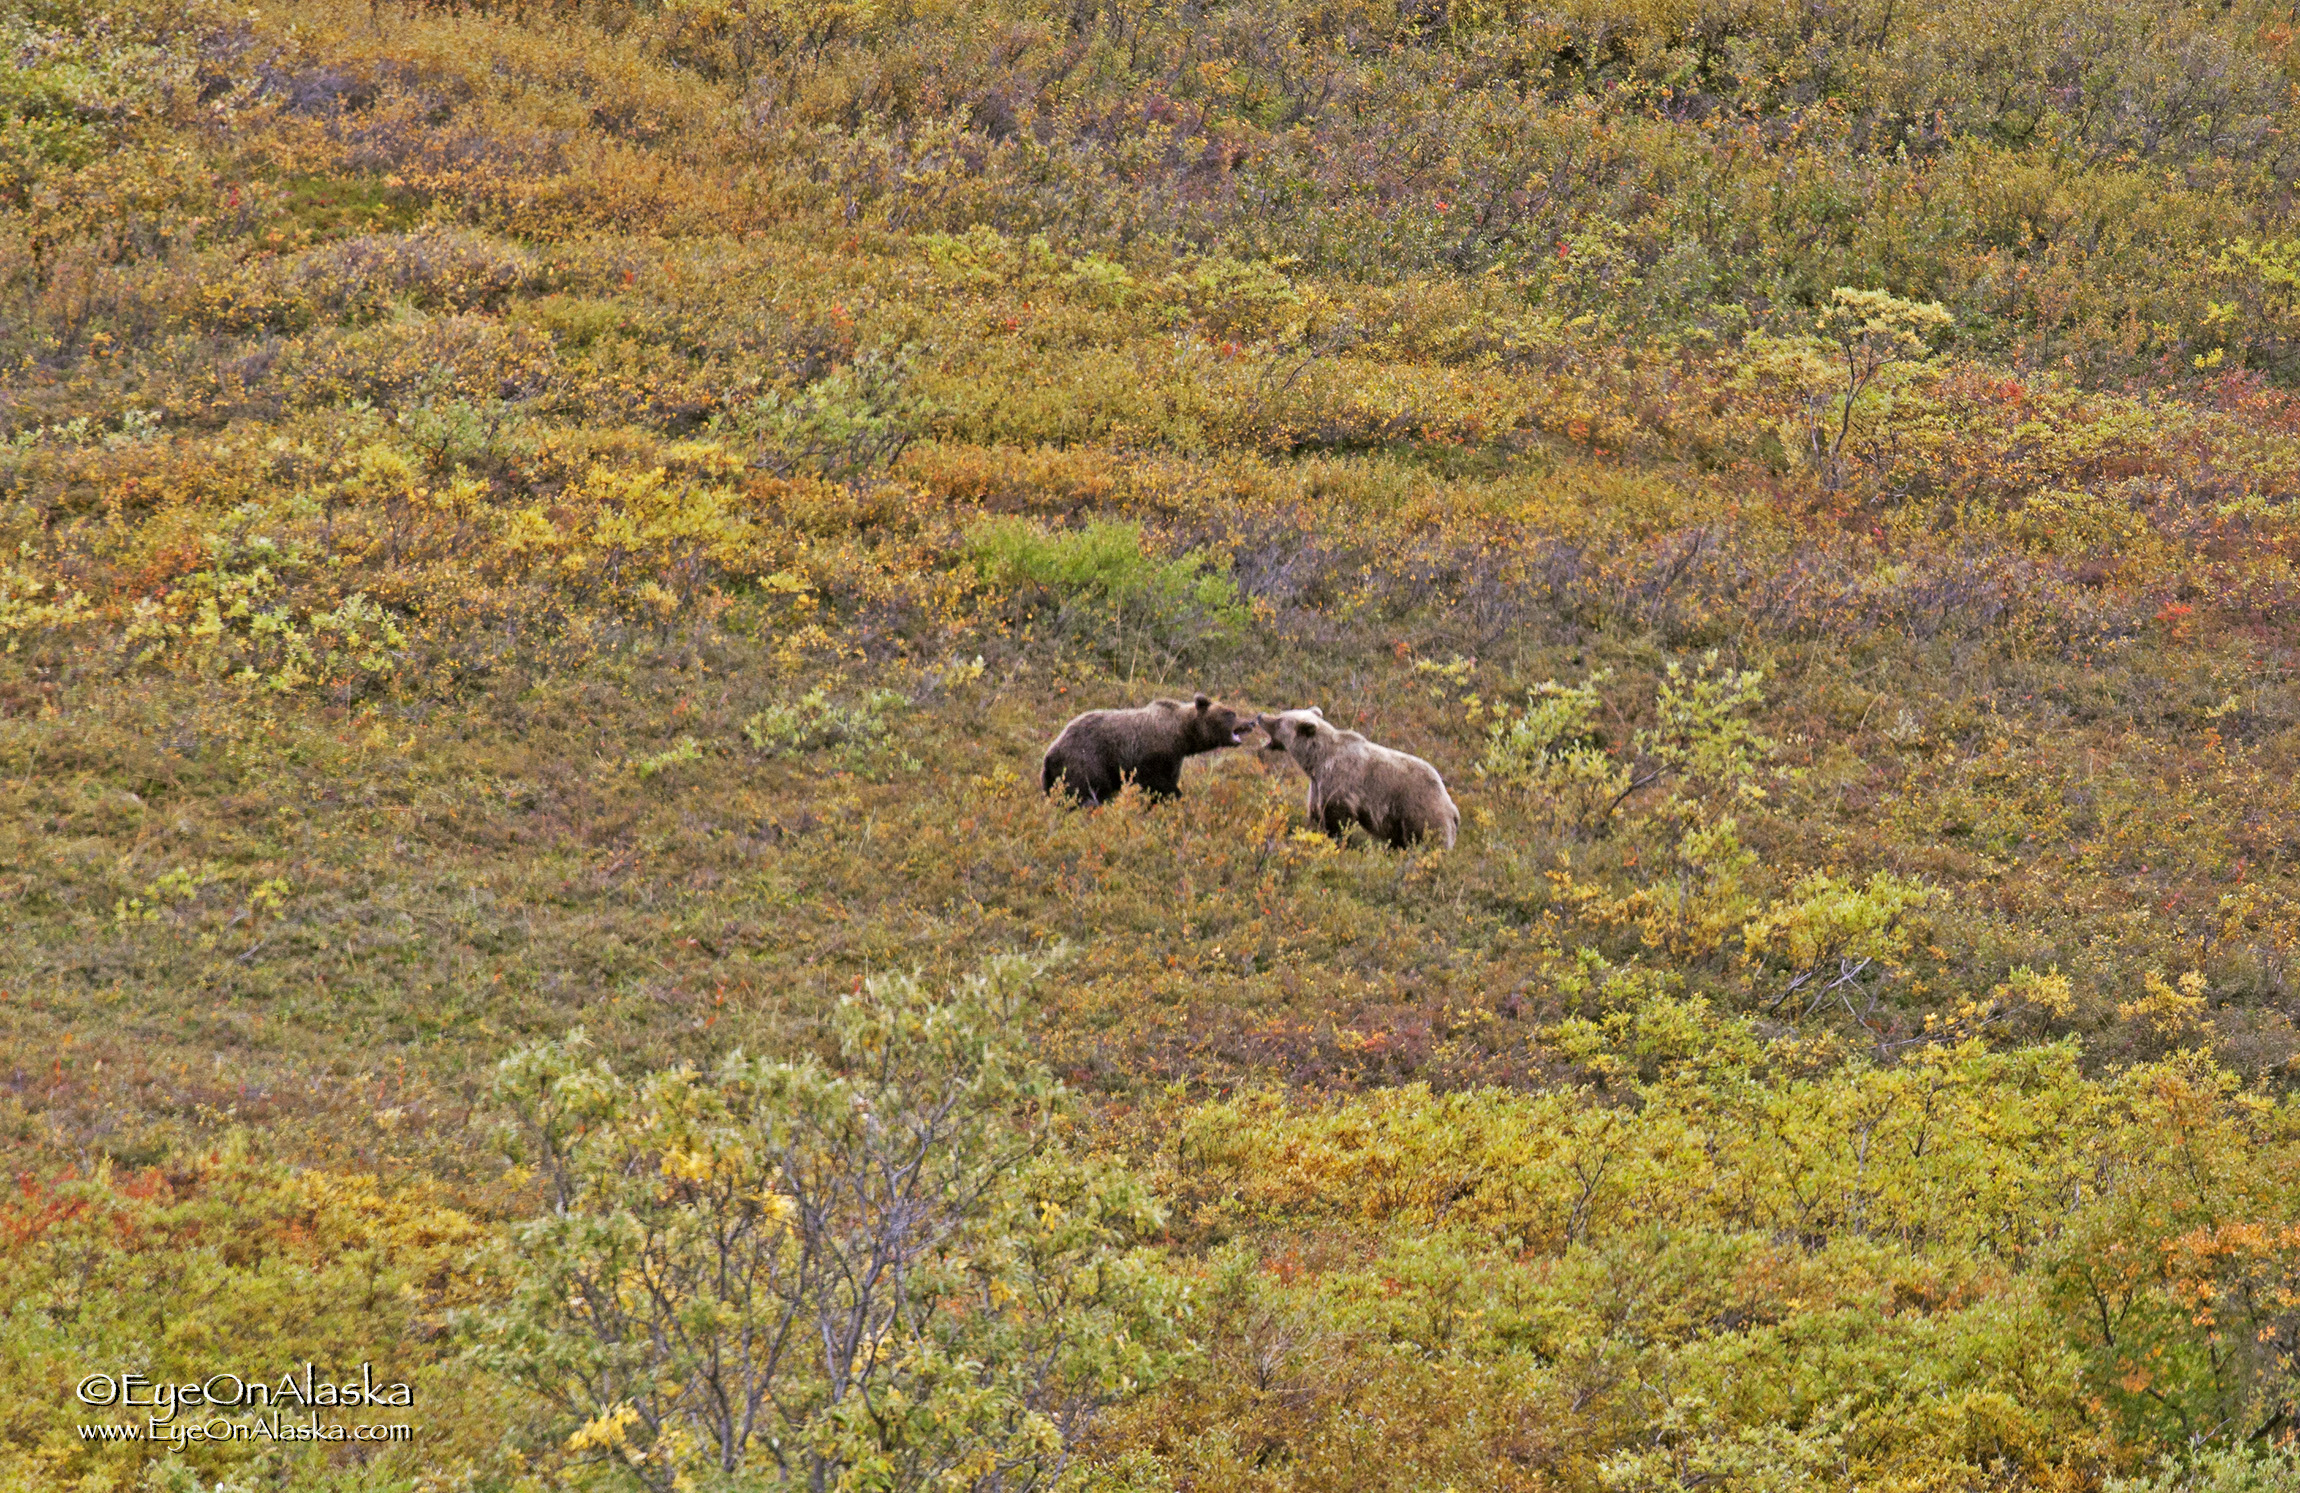 so the bus keeps moving--for about 200 yards, when we see 3 more bears on the right side of the road!   We think this is Mama bear telling one of her cubs that it's time to leave the nest and go out on his own.  The sows will nurse for 2 to 3 years and then kick them out--sometimes violently- so they can get pregnant again.